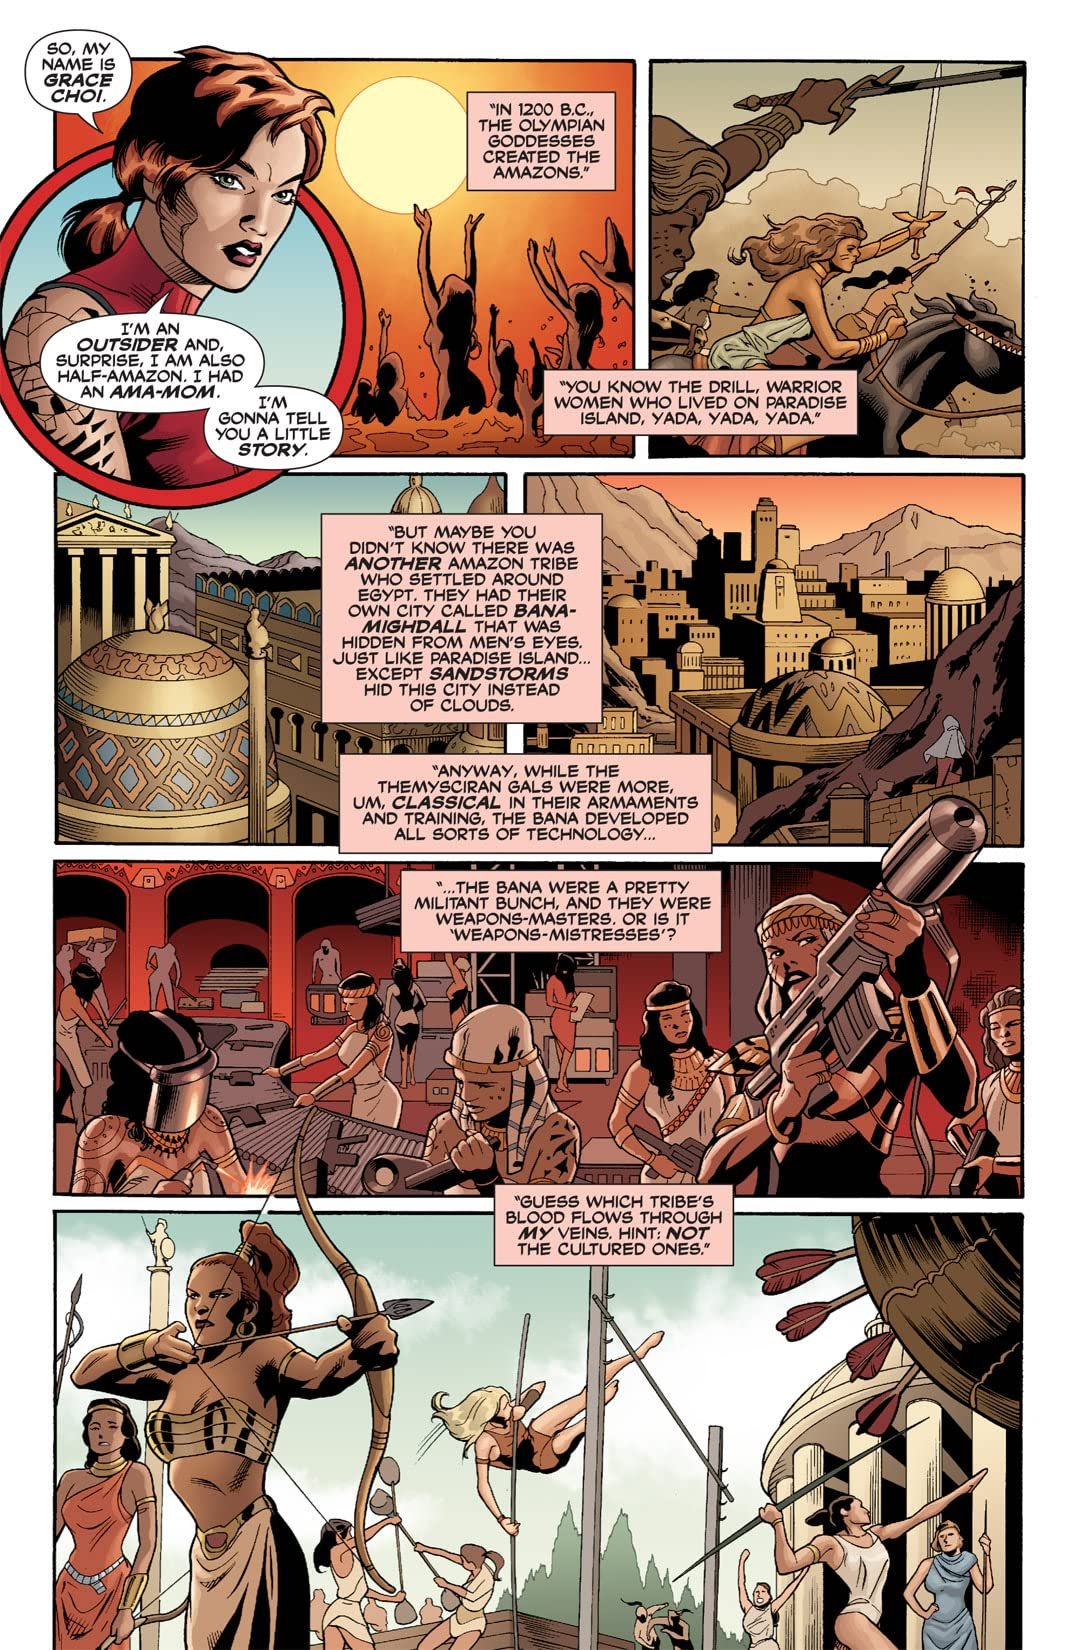 Outsiders: Five of a Kind #5 (of 5): Wonder Woman/Grace